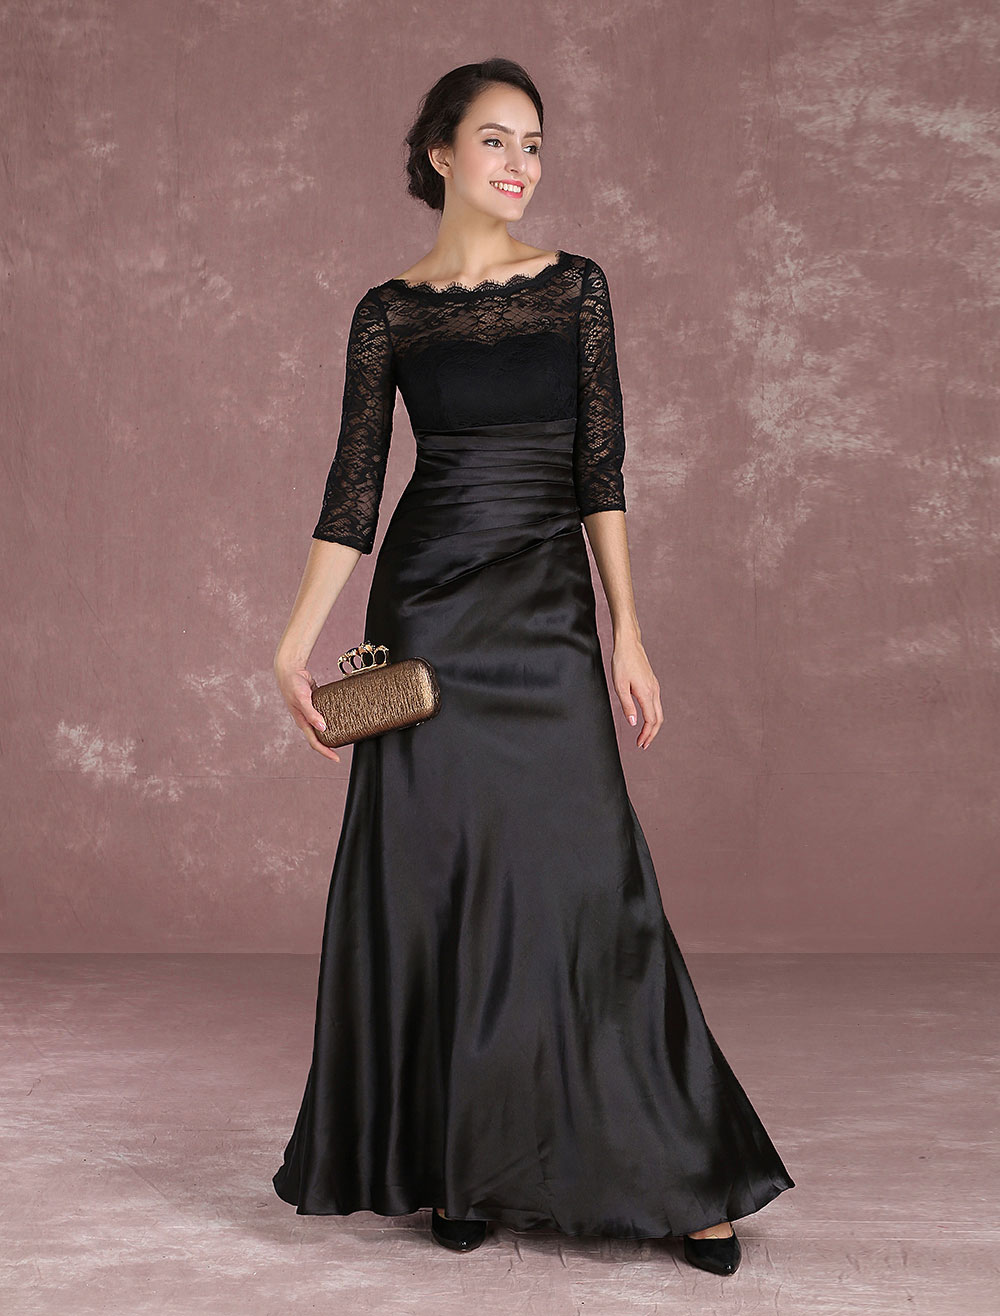 Buy Black Mother Of The Bride Dresses Lace Illusion Half Sleeve Evening Dresses Satin Floor Length Formal Dress for $180.89 in Milanoo store